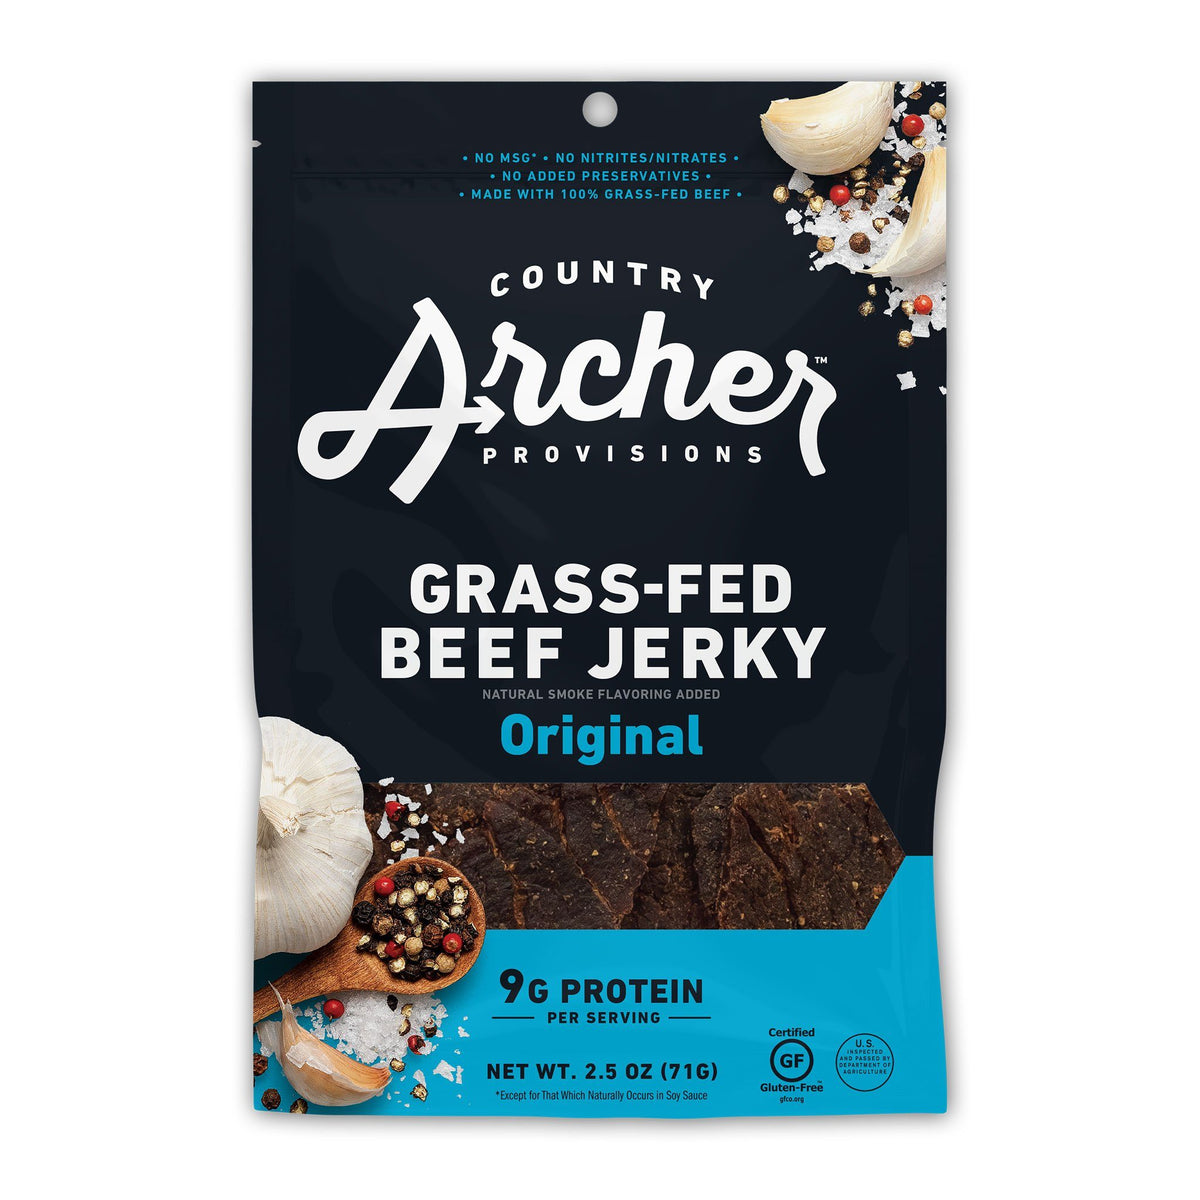 bag of Country Archer grassfed beef jerky Front